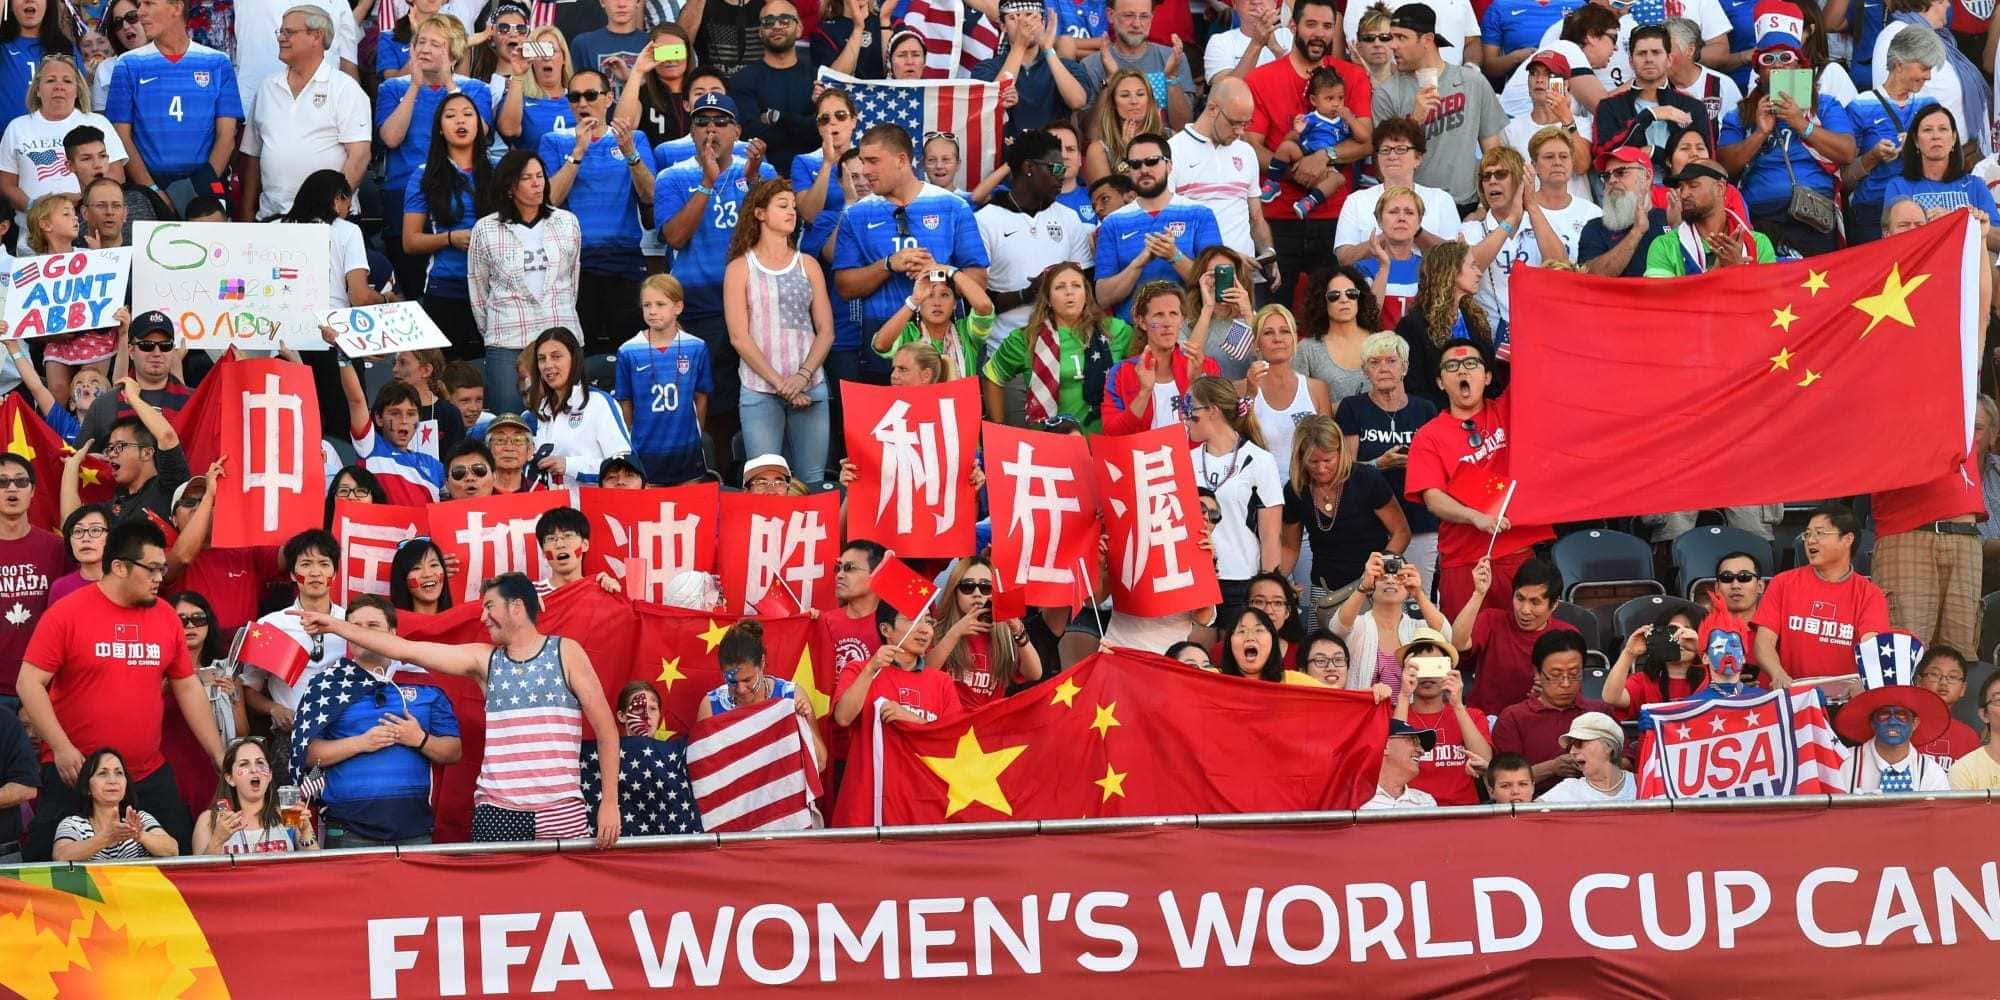 Fans of China and the US cheer before their  2015 FIFA Women's World Cup quarterfinal match between the US and China at Lansdowne Stadium in Ottawa, Ontario on June 26, 2015.    AFP PHOTO/NICHOLAS KAMM        (Photo credit should read NICHOLAS KAMM/AFP/Getty Images)